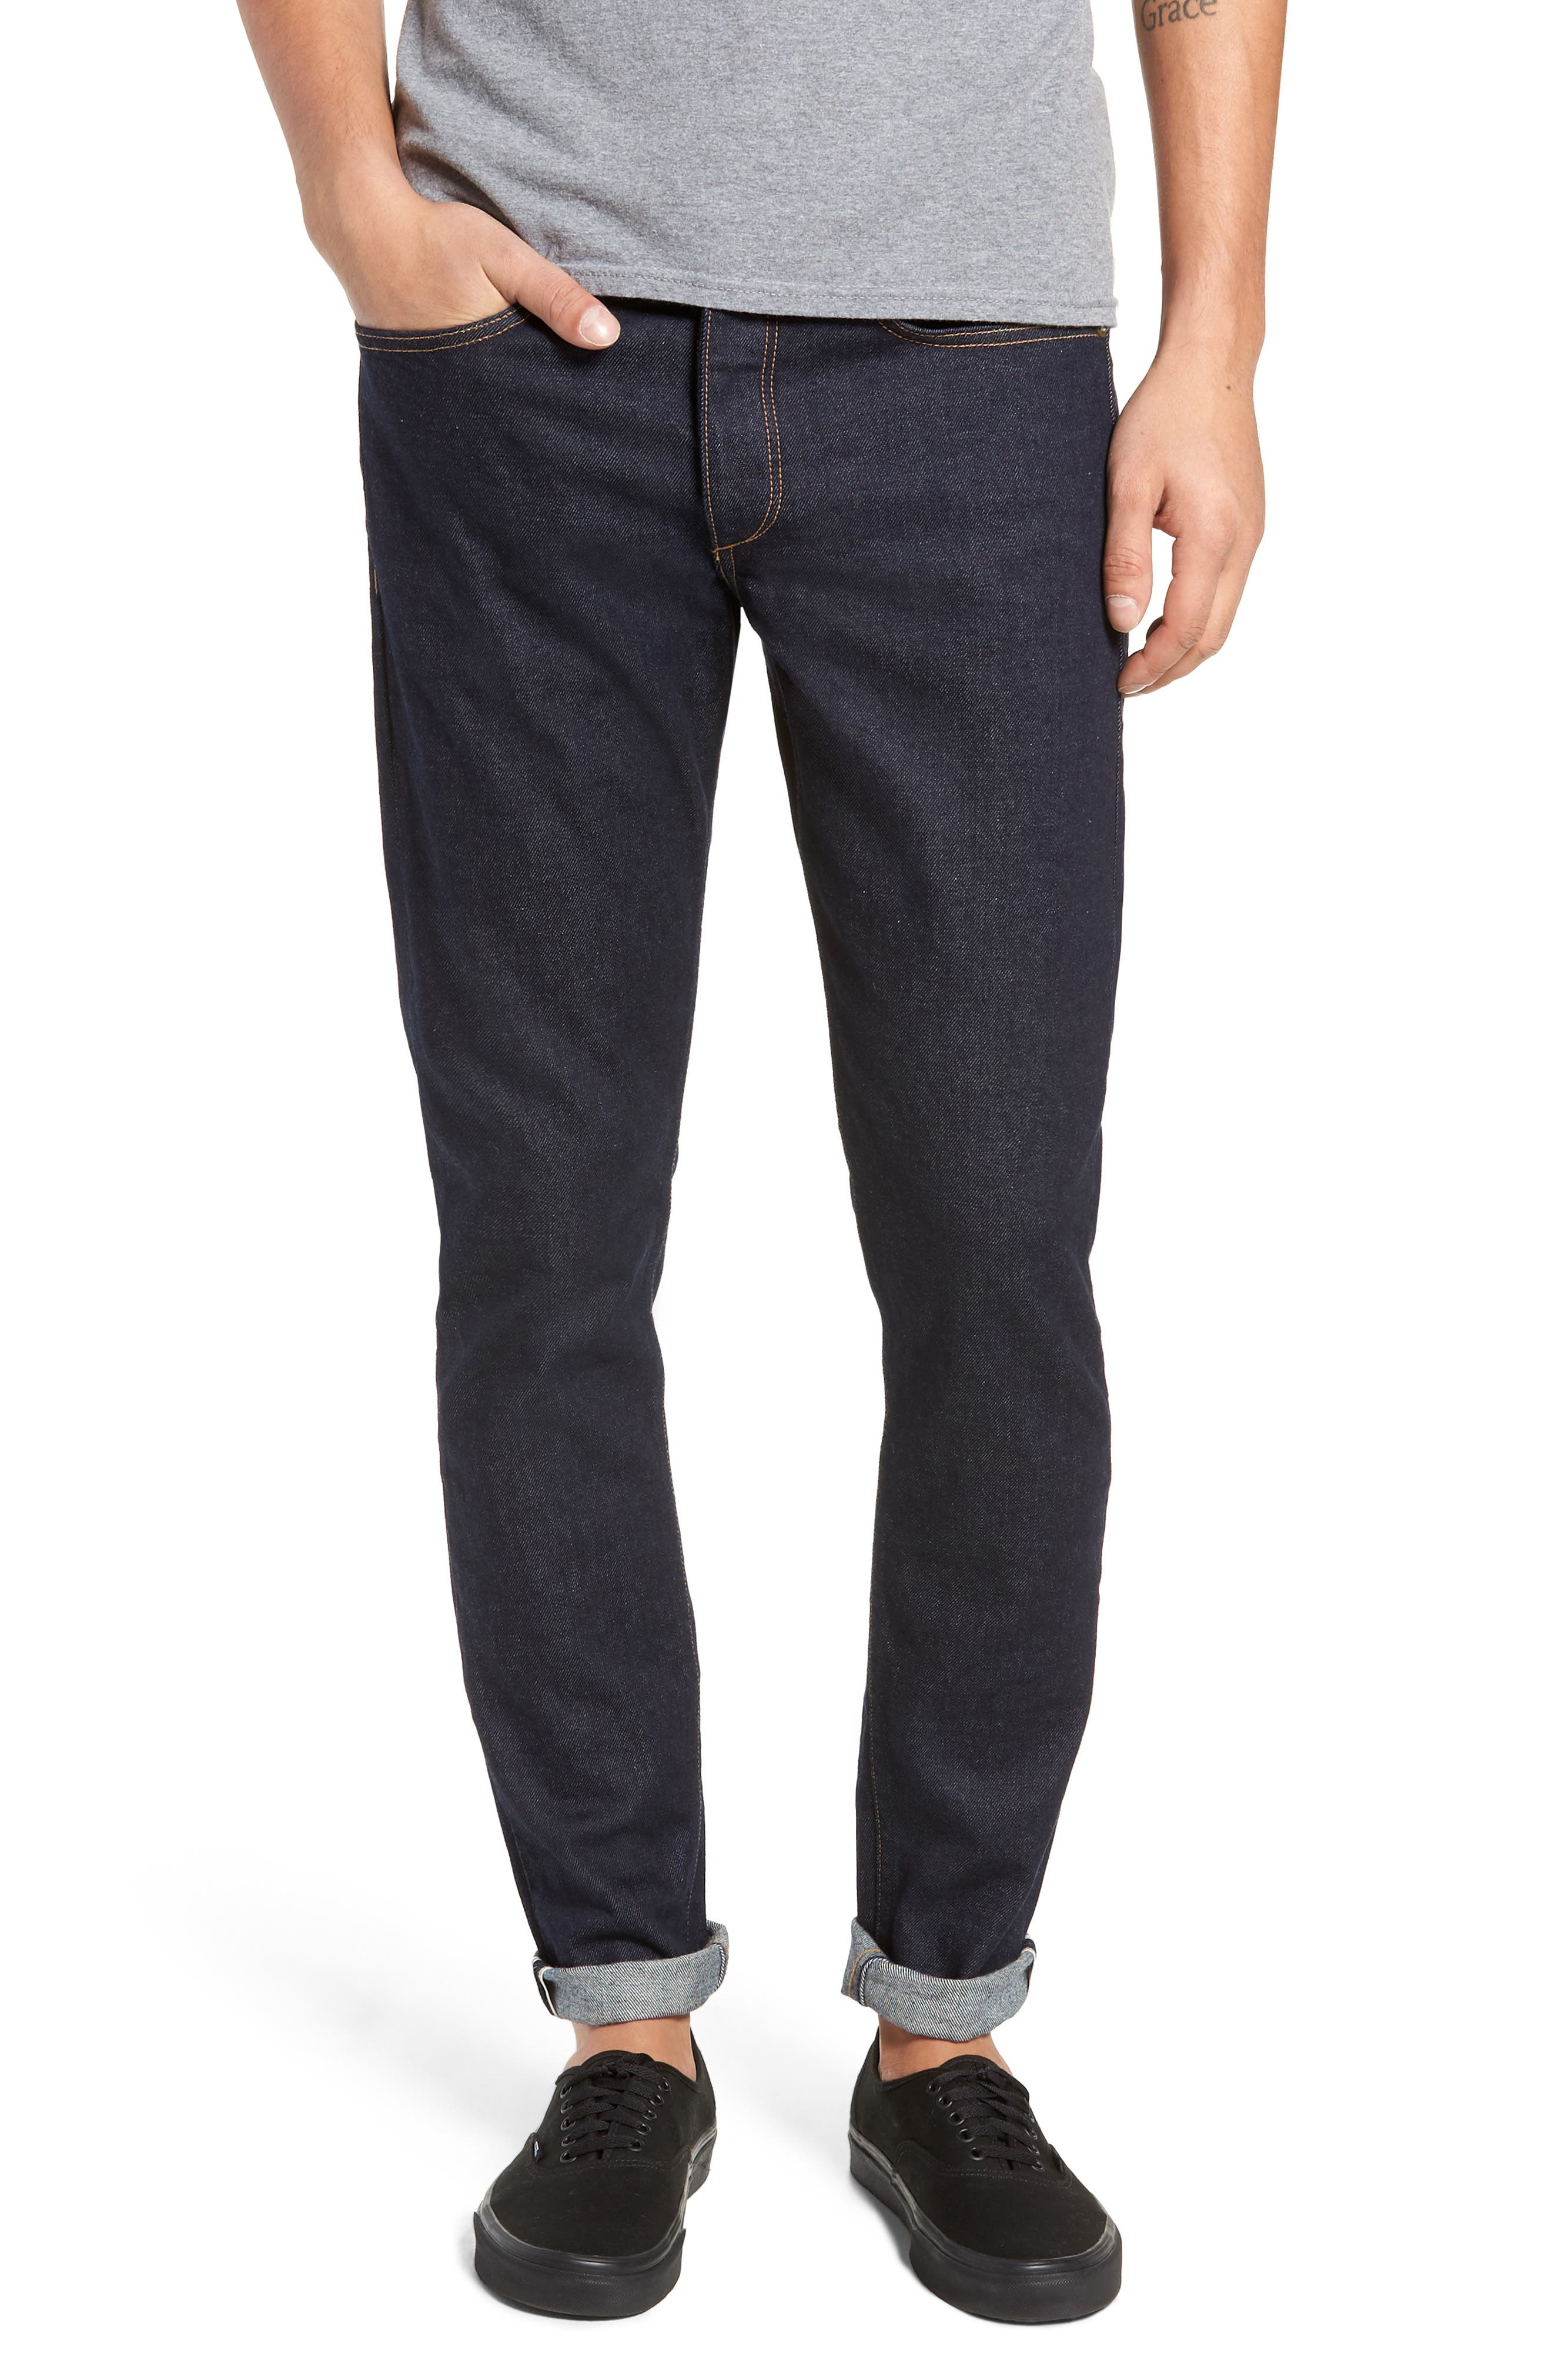 Fit 1 Skinny Fit Jeans,                         Main,                         color, INDIGO RINSE SELVEDGE